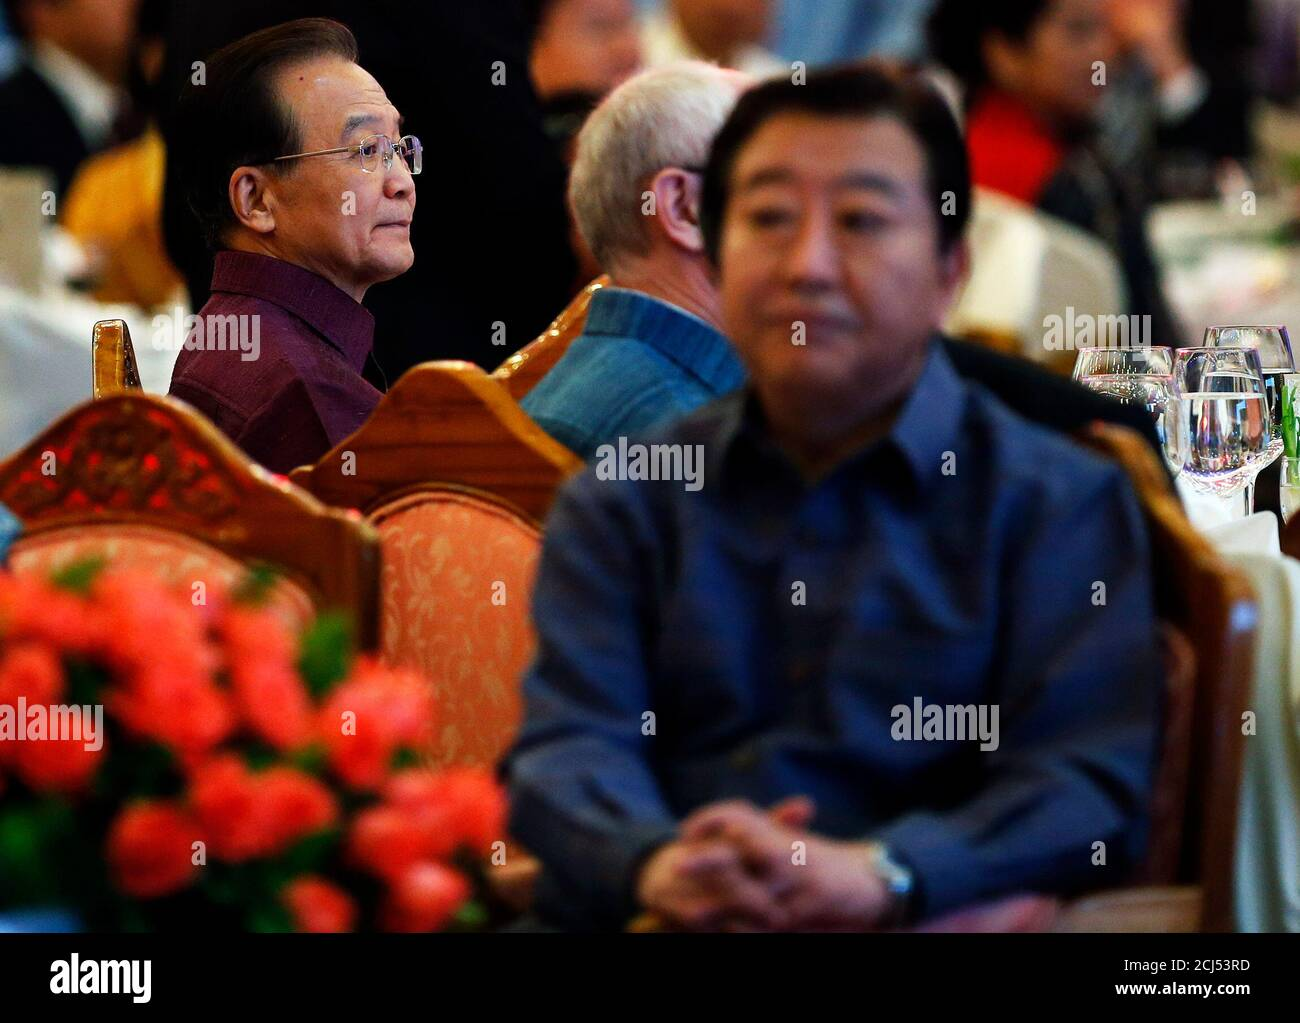 China's Premier Wen Jiabao (L) sits behind Japan's Prime Minister Yoshihiko Noda at the gala dinner as a part of the ASEM Summit in Vientiane November 5, 2012. A high-profile group of leaders and foreign ministers from Asia and Europe arrived at the capital of Laos for the Asia-Europe Meeting (ASEM) summit, held once every two years and scheduled from November 5 to 6. REUTERS/Damir Sagolj (LAOS - Tags: POLITICS) Foto de stock